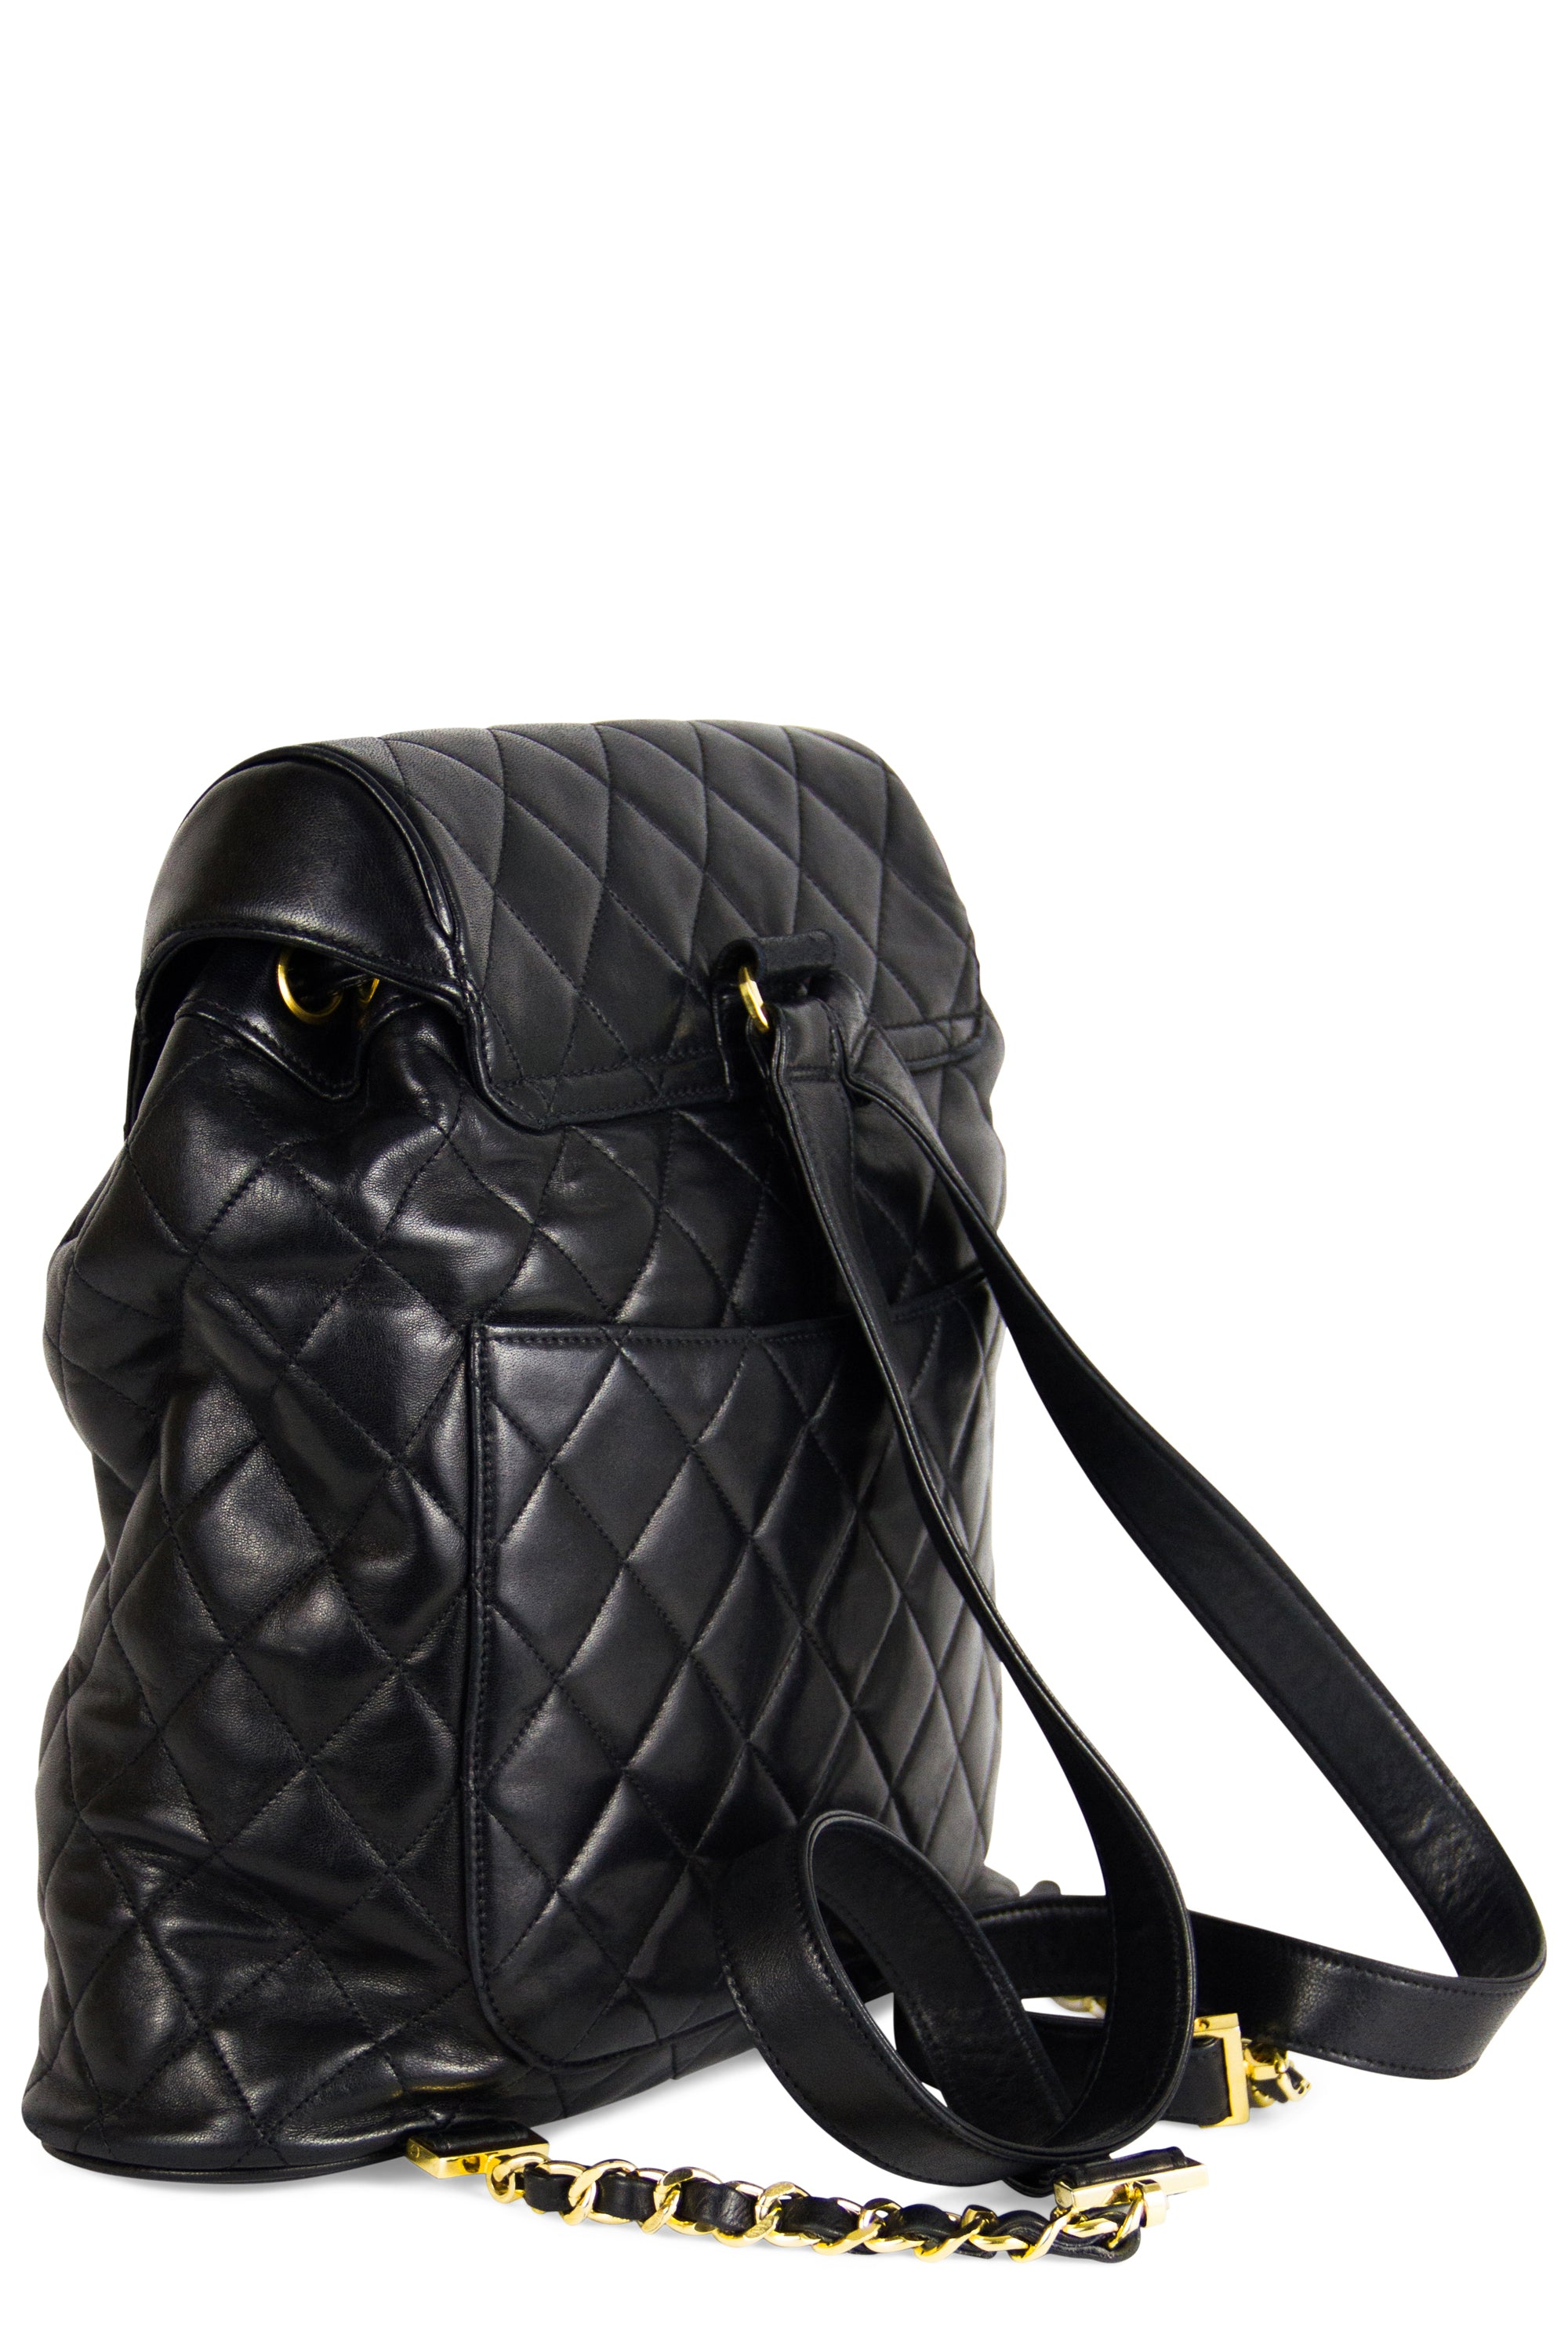 CHANEL Vintage Backpack